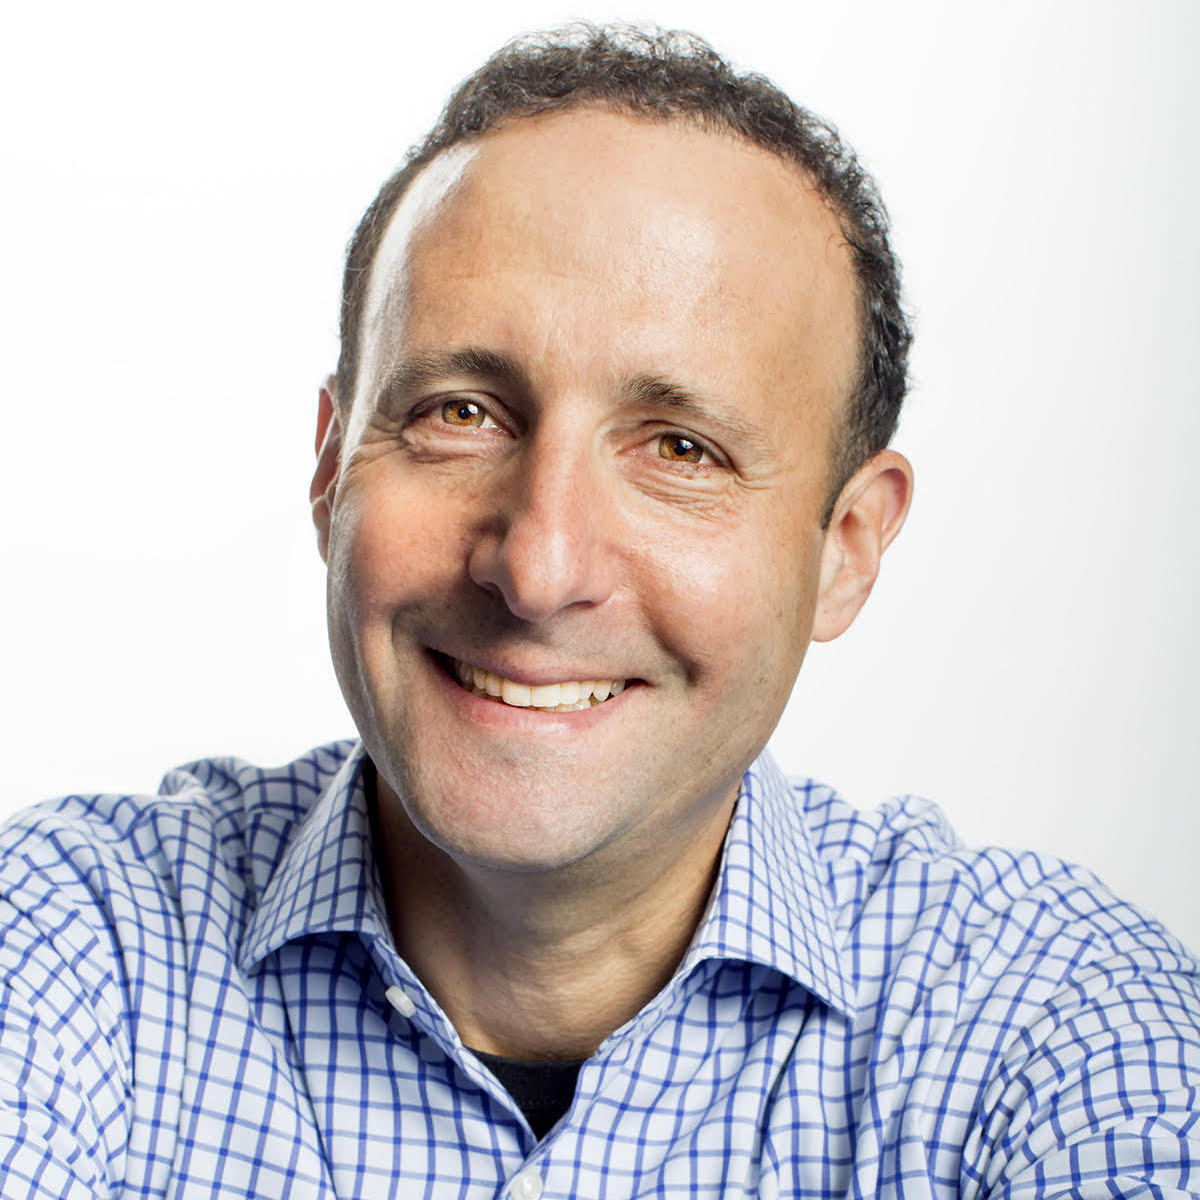 David Ossip - Chairman & CEO at Ceridian